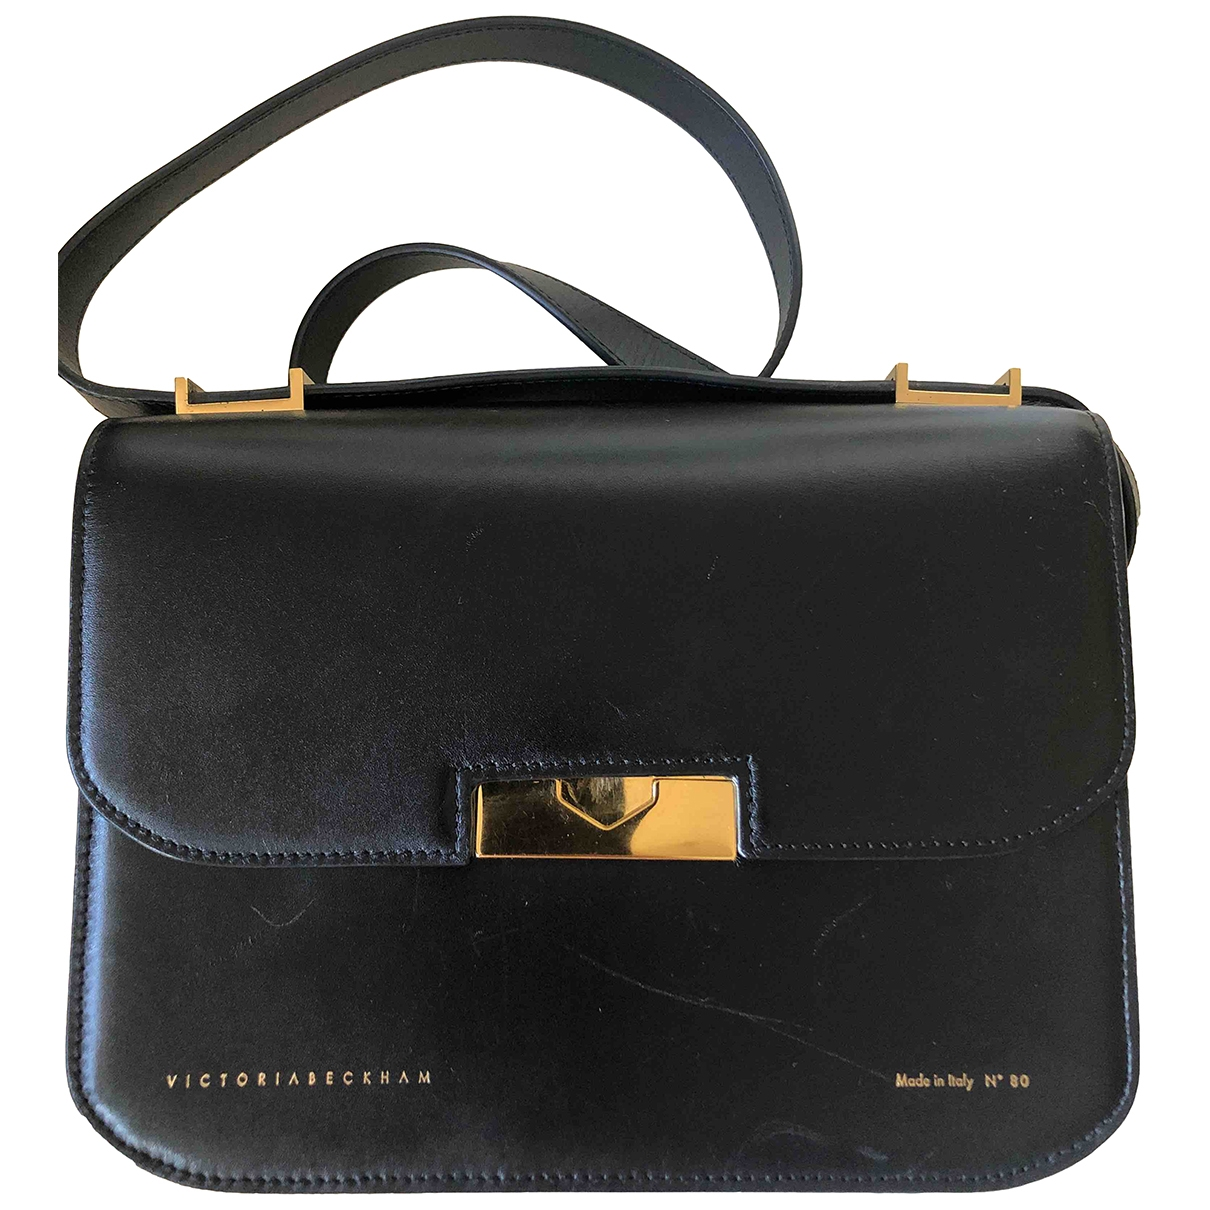 Victoria Beckham \N Black Leather handbag for Women \N